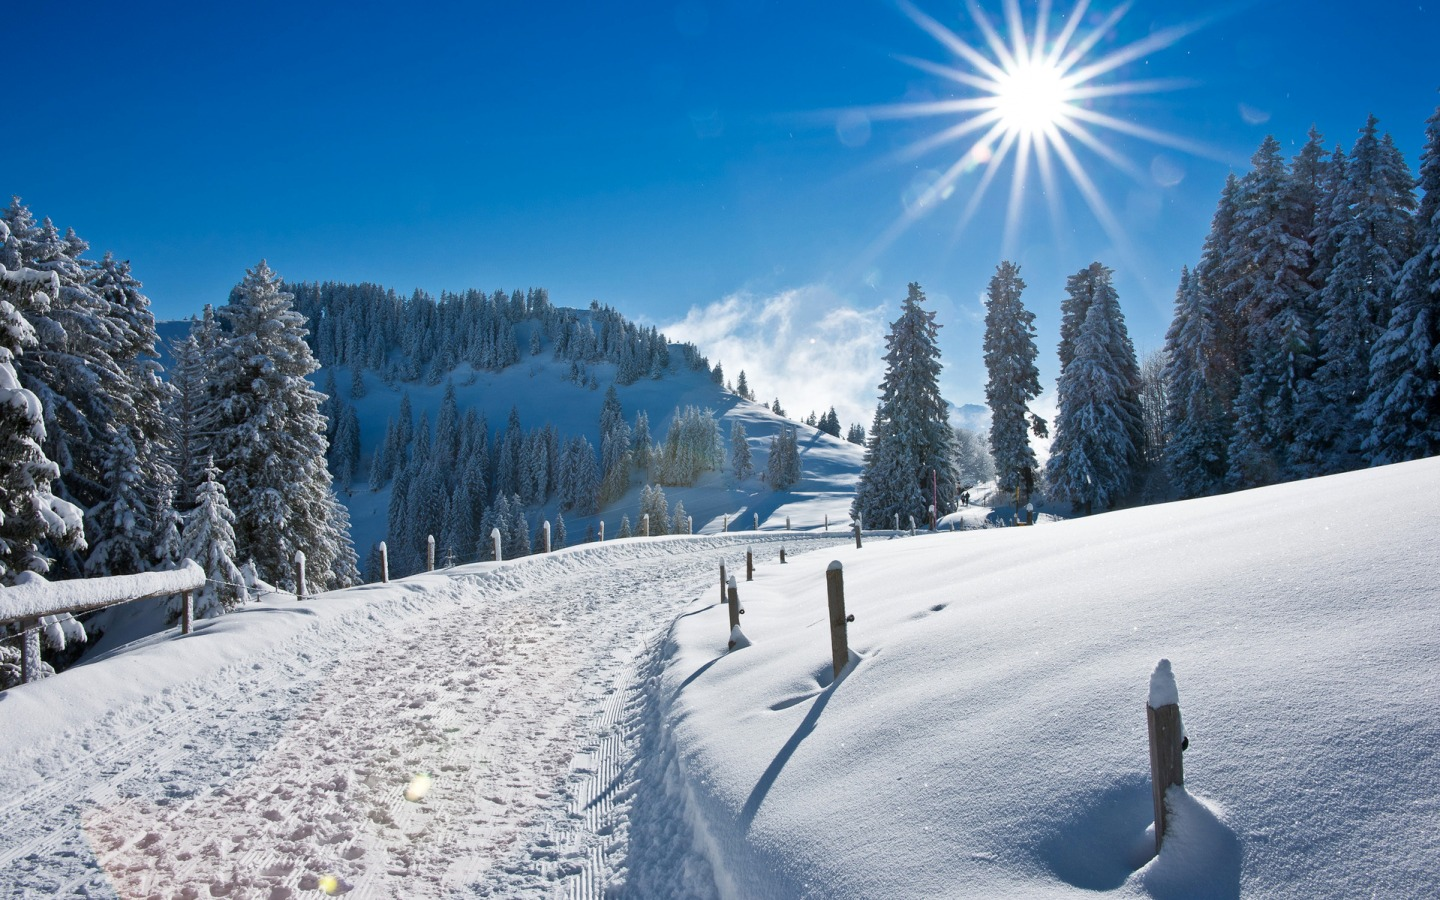 Winter Snow Pictures Free